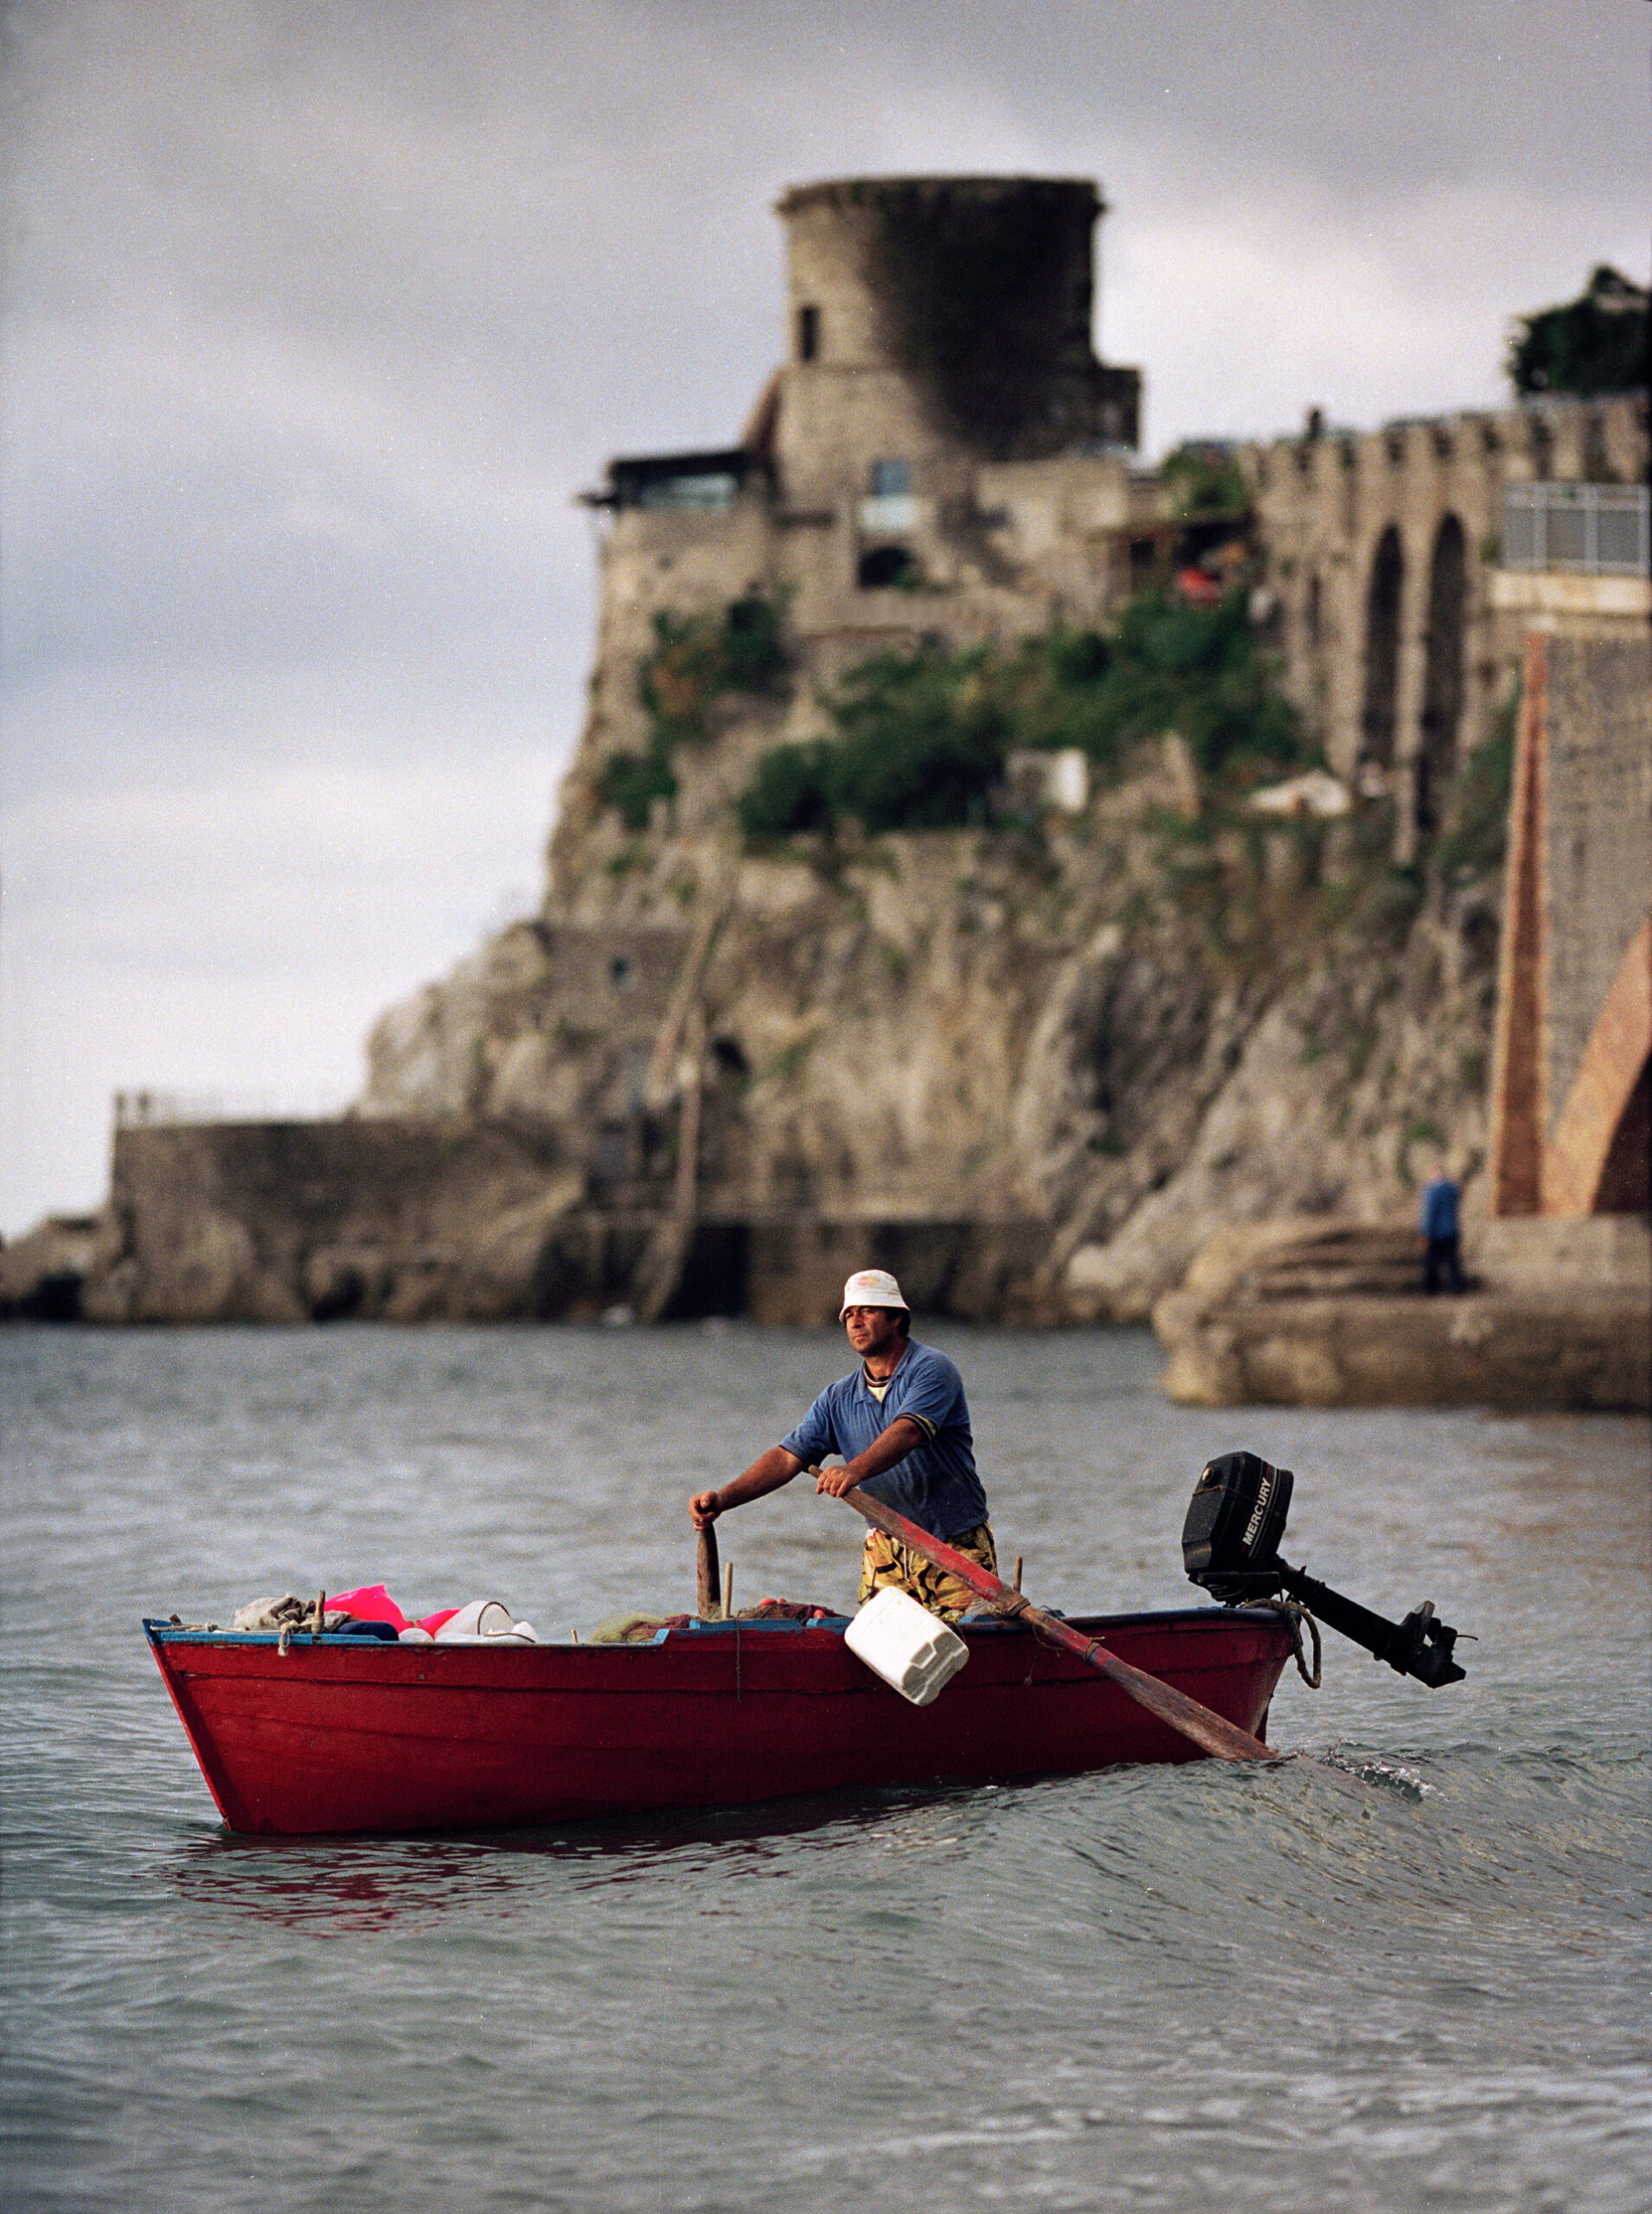 A fisherman in a small rowing boat off the Amalfi coast in Italy